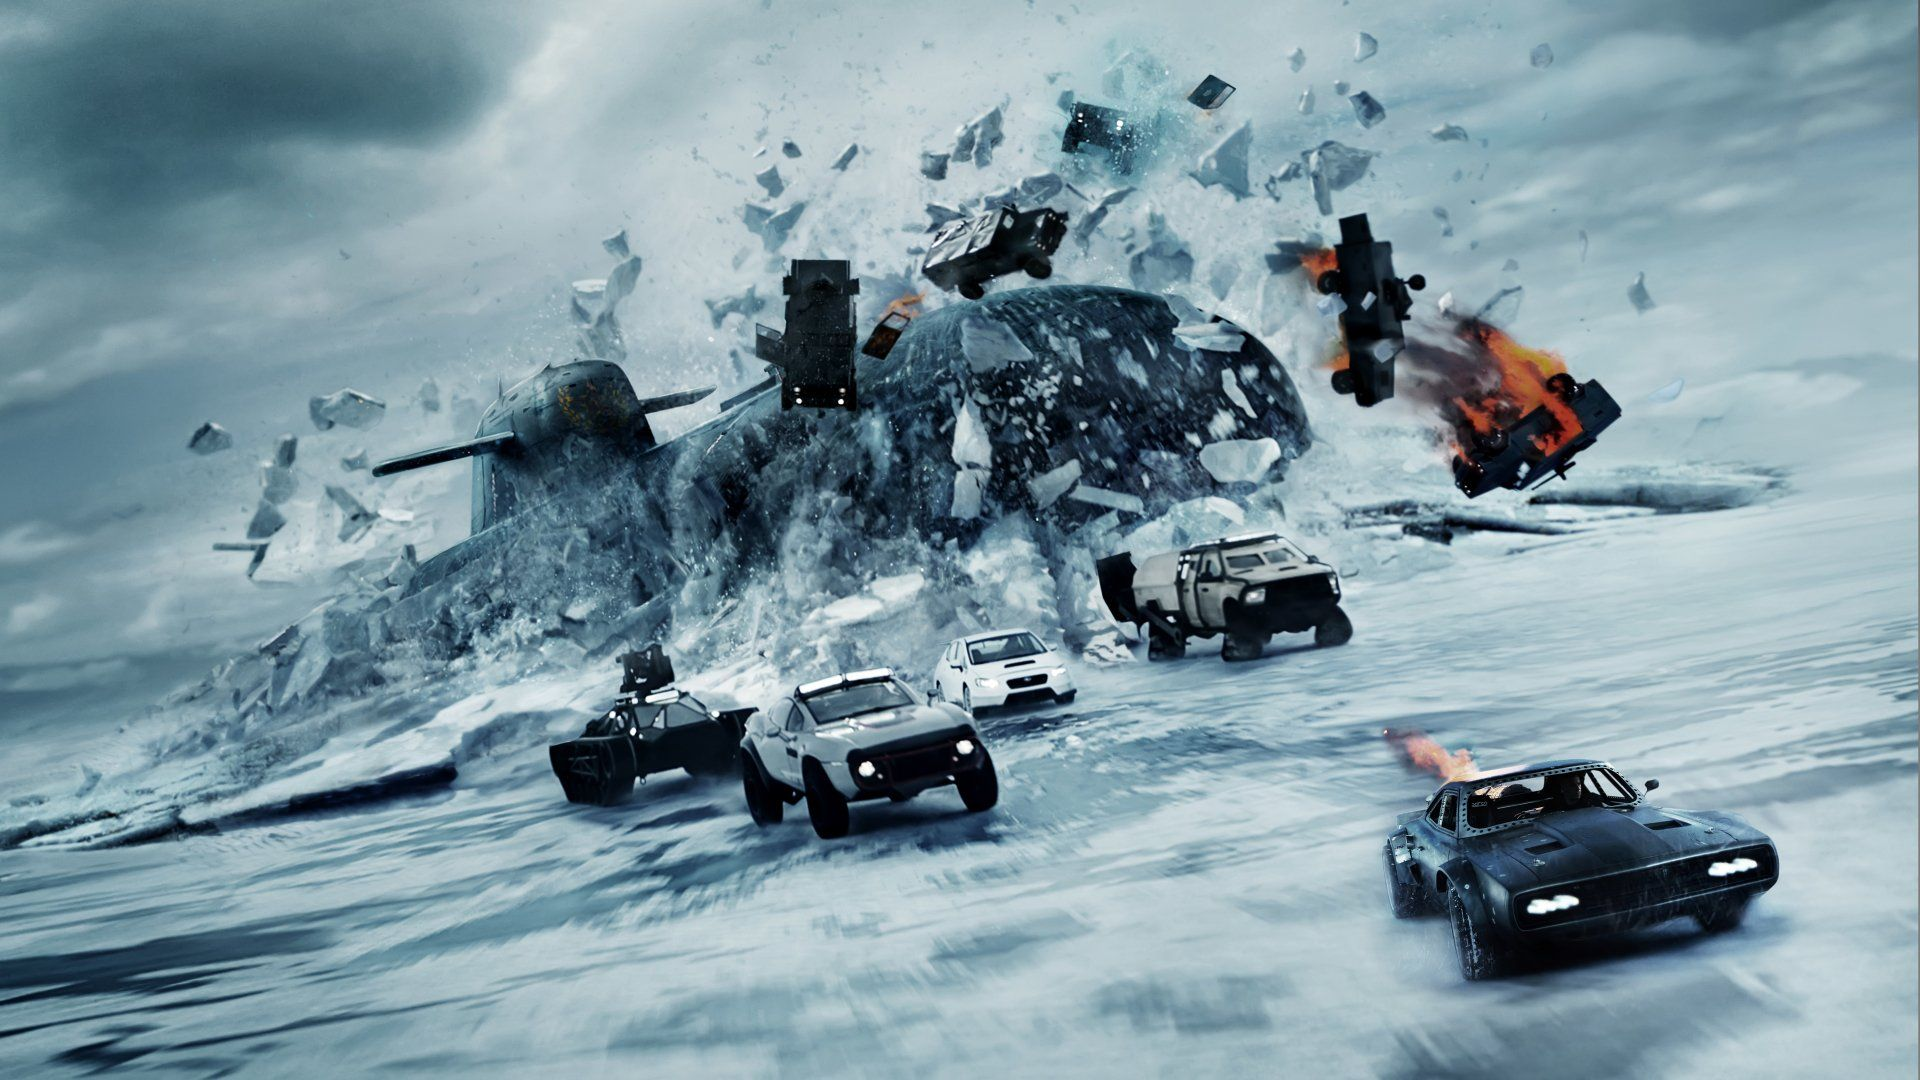 Movie The Fate Of The Furious Fast Furious Car Submarine The